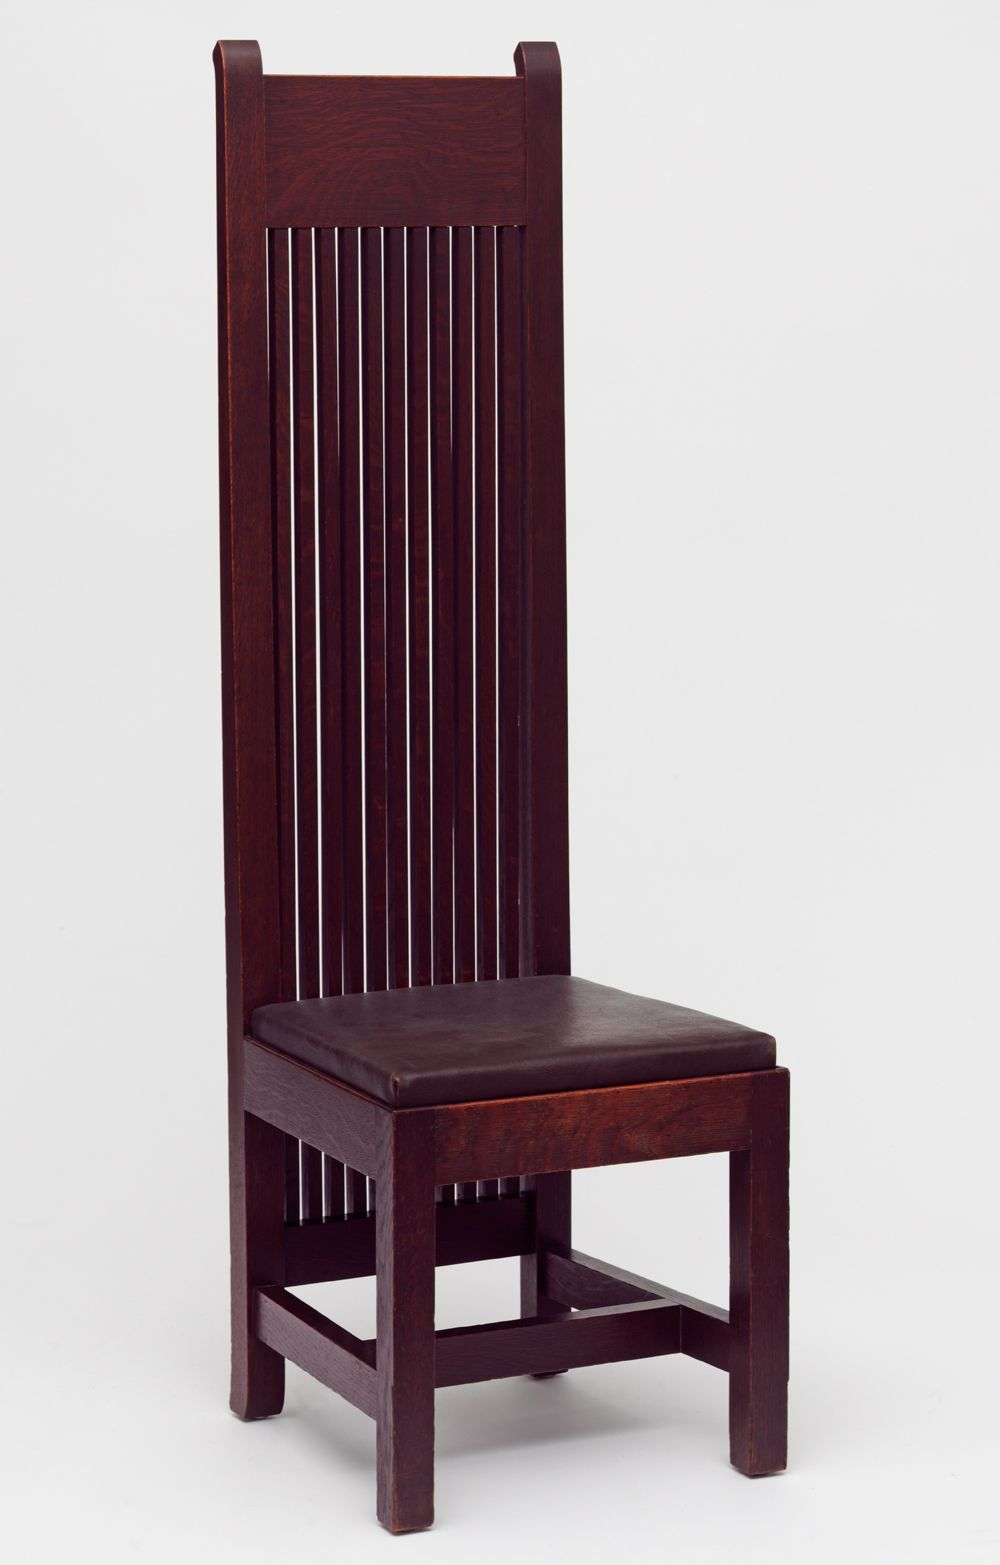 Arts and crafts furniture chair - U S Arts And Crafts Dining Chair 1902 Designer Frank Lloyd Wright